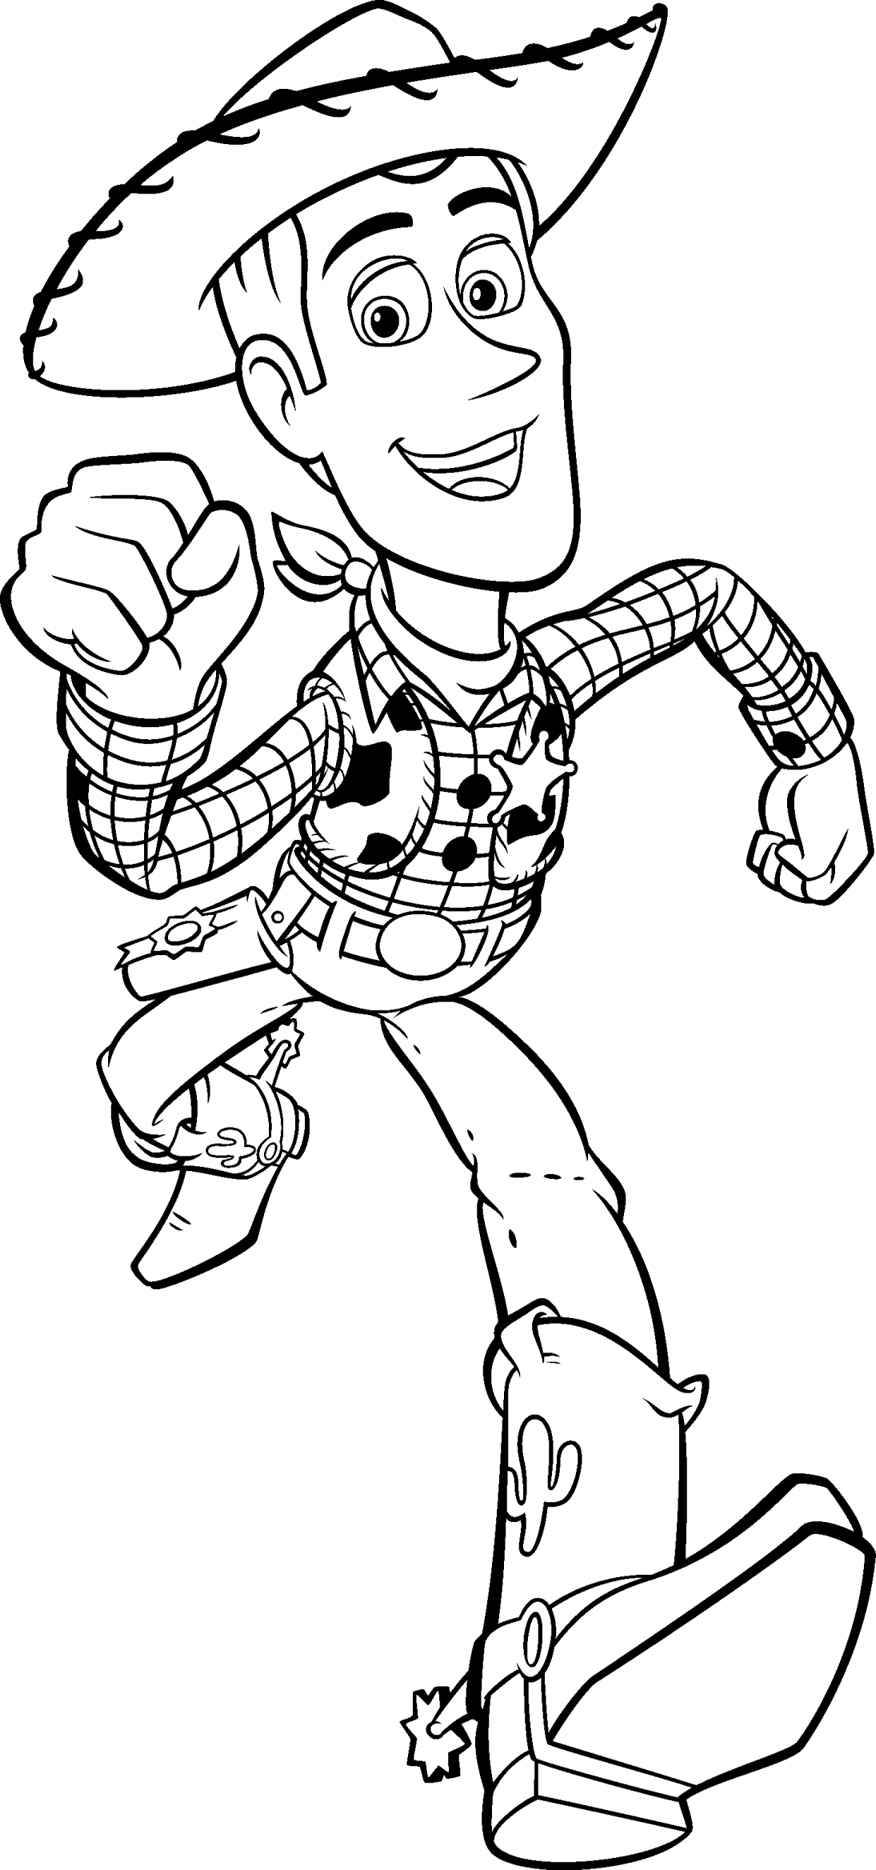 Woody Toy Story Coloring Pages